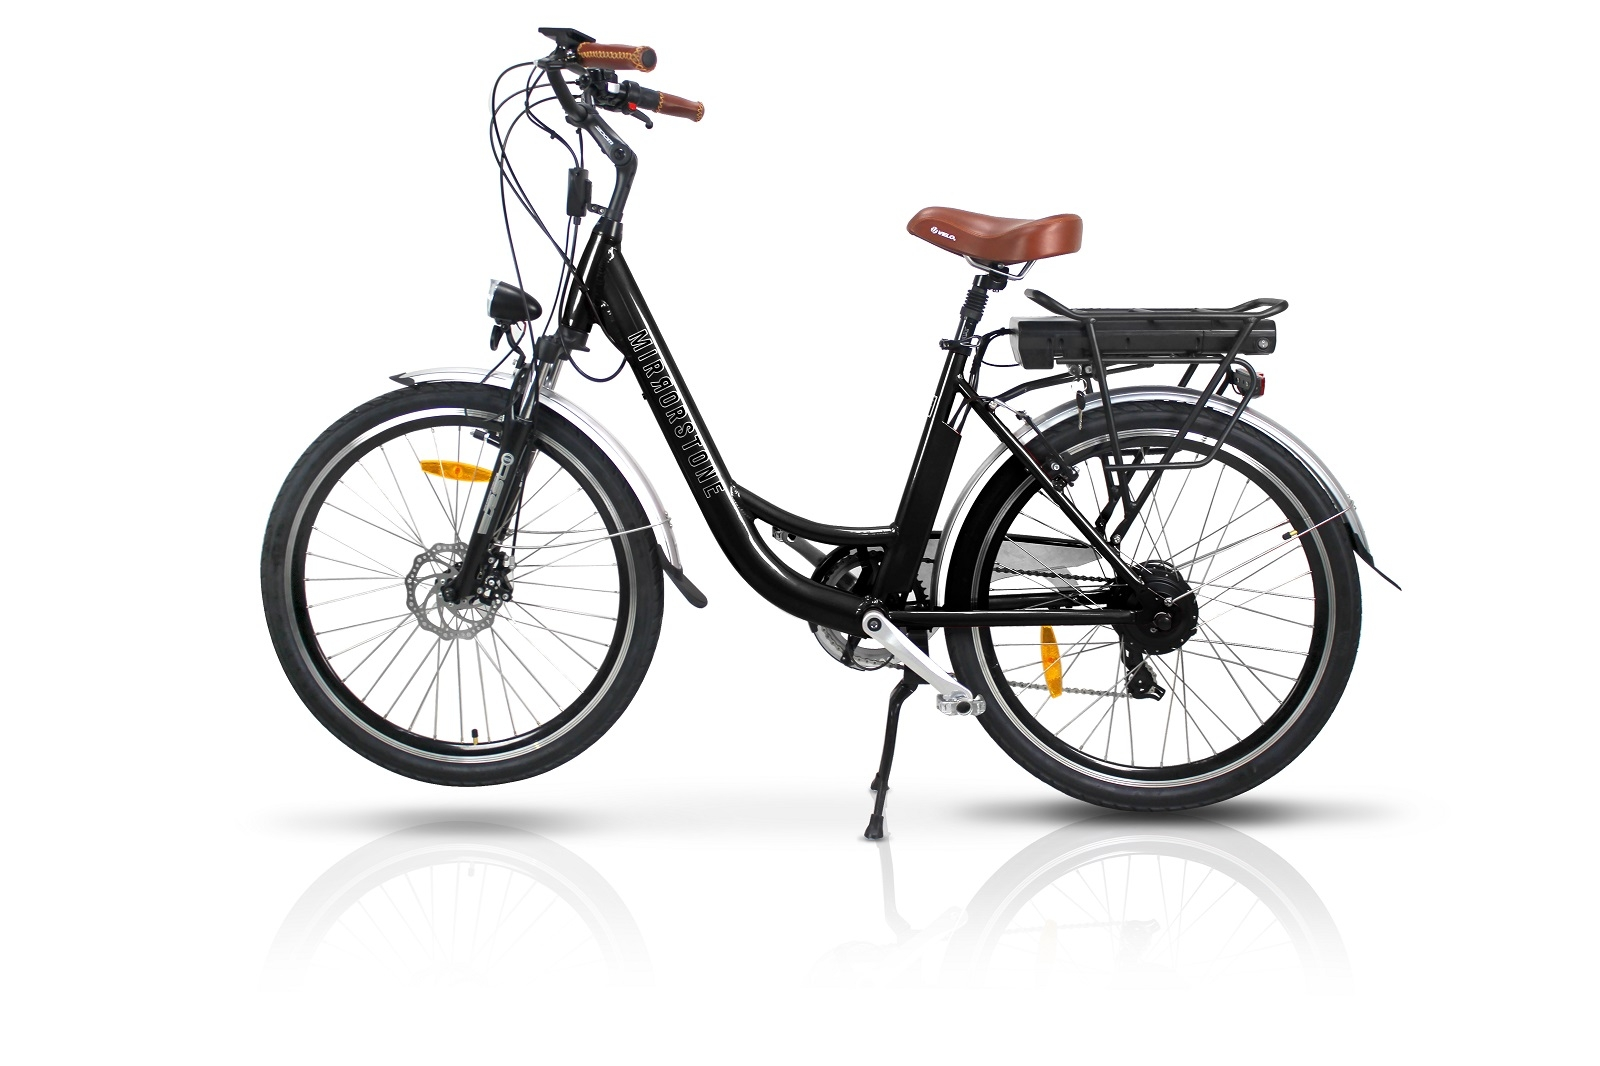 Dynamic Dutch Electric Bike Black 26 Wheels